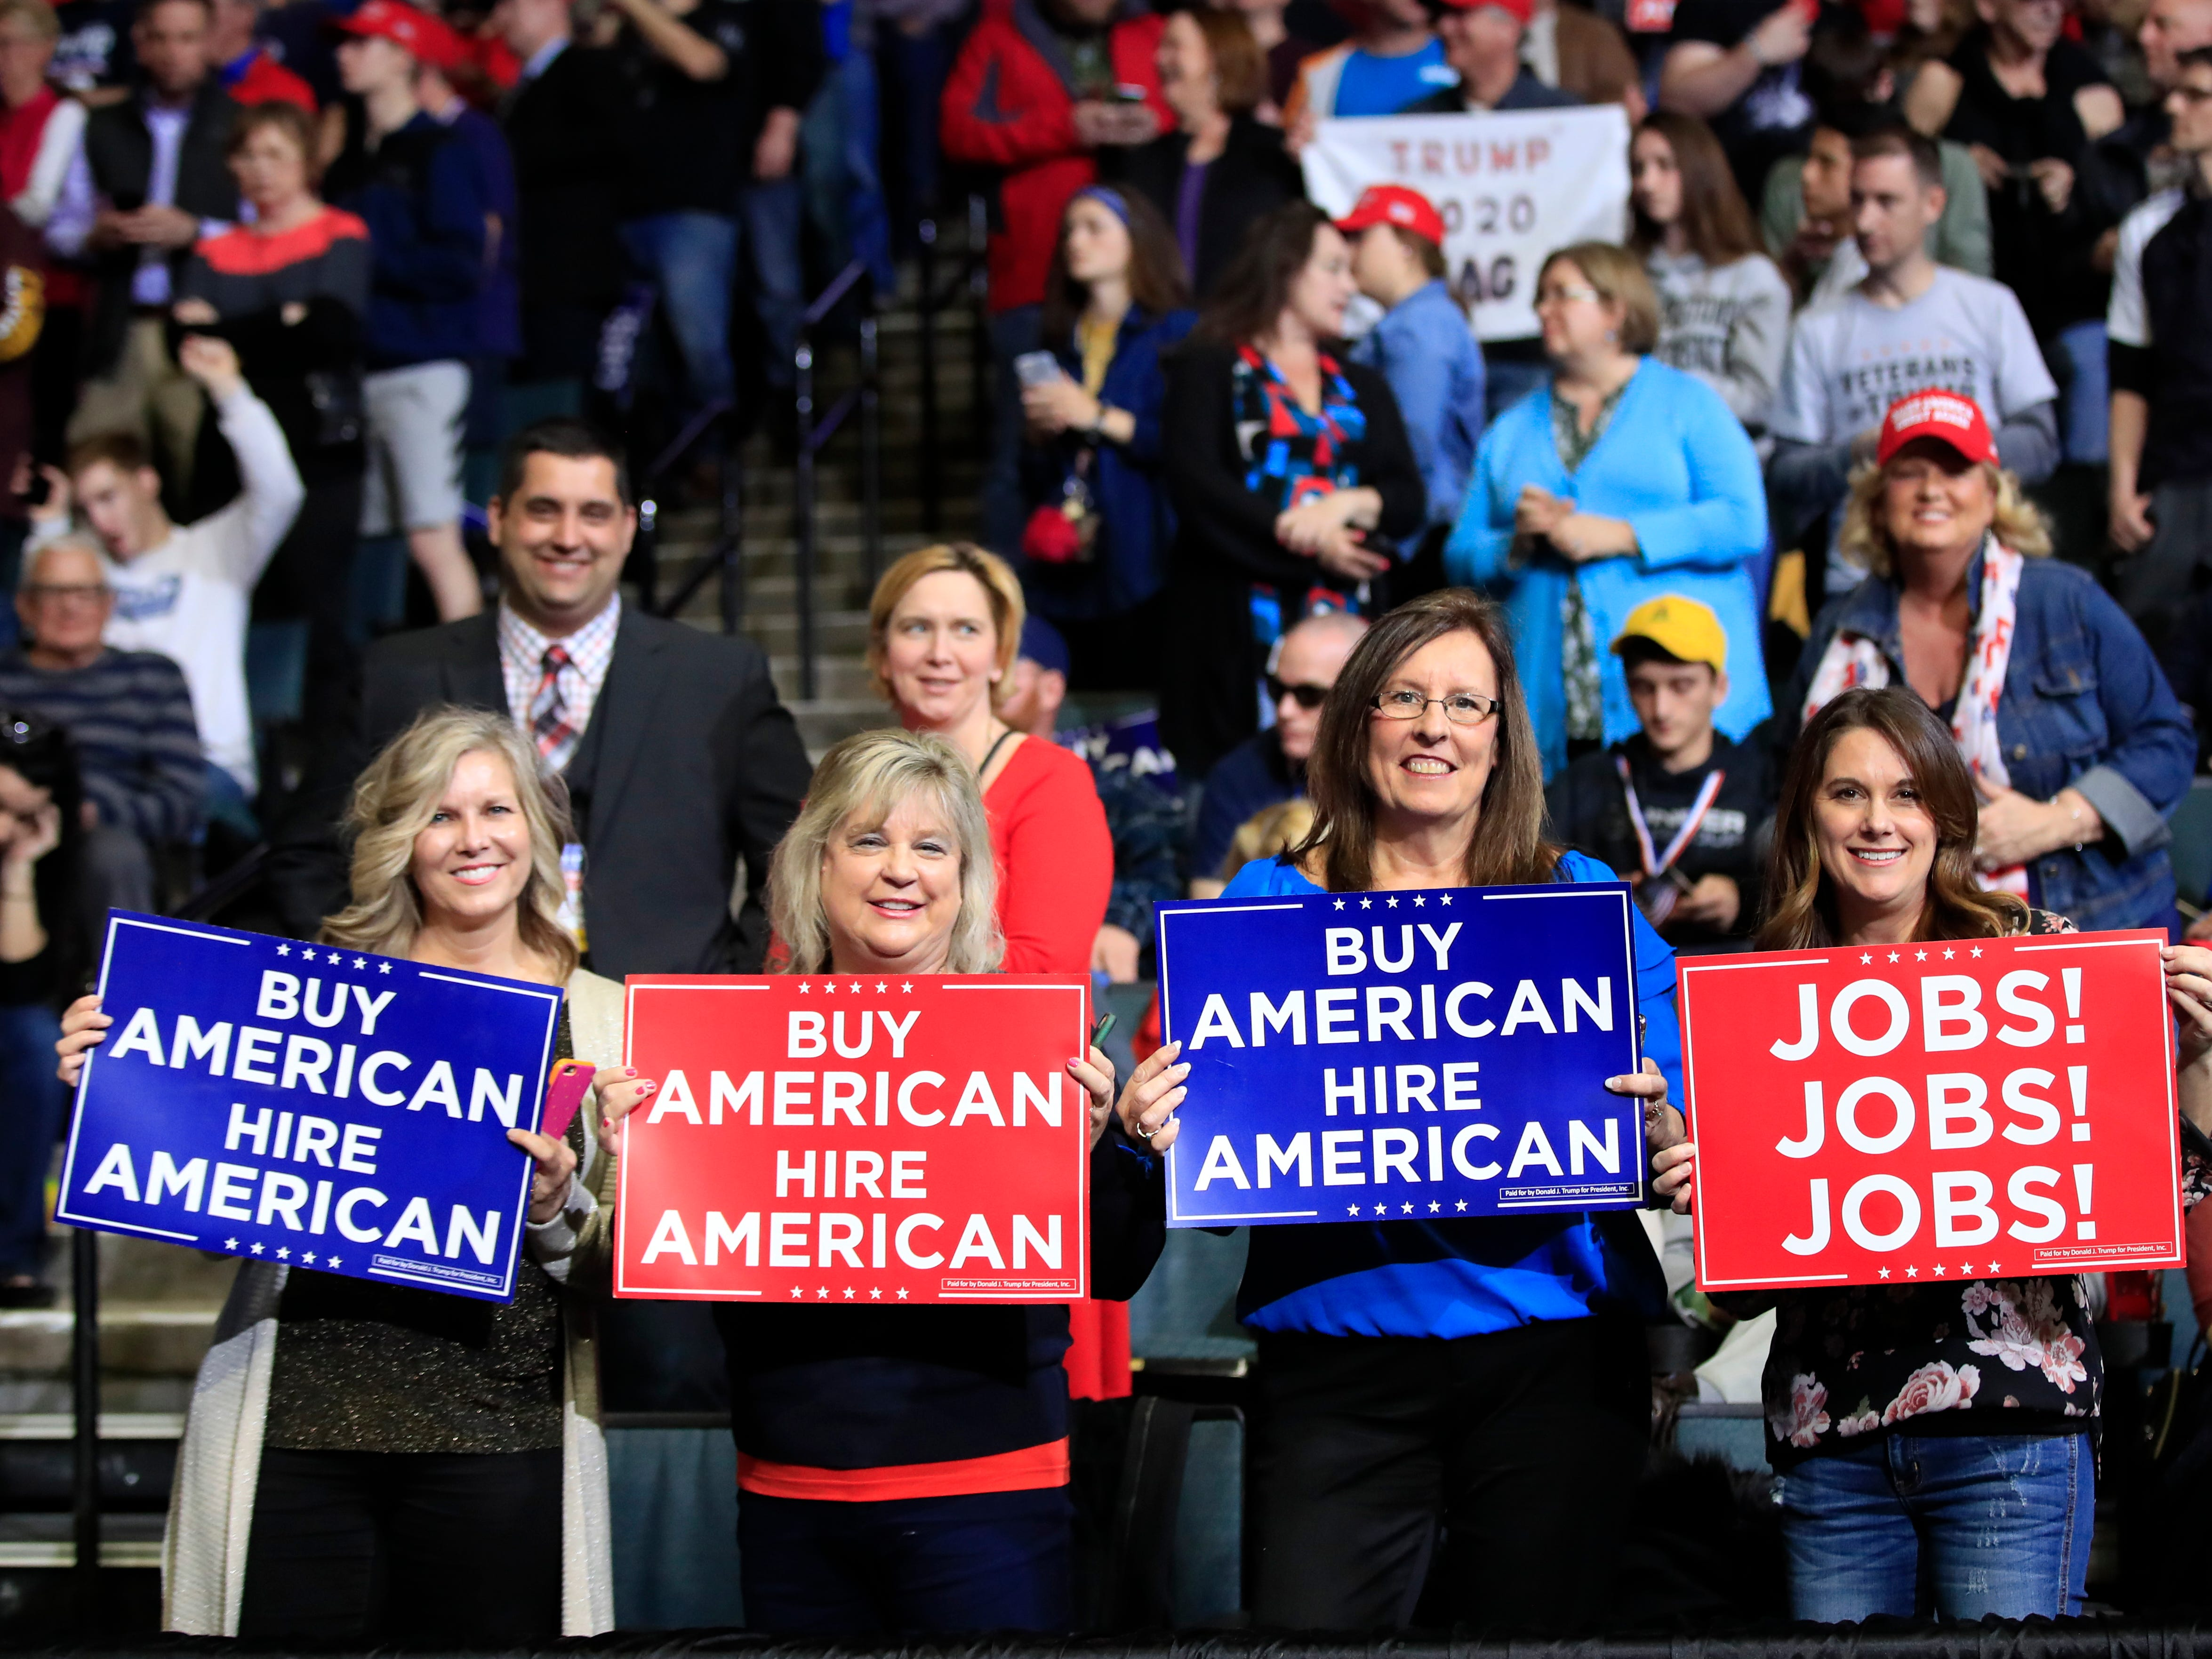 People wait for President Donald Trump to speak at a rally in Grand Rapids, Mich., Thursday, March 28, 2019.